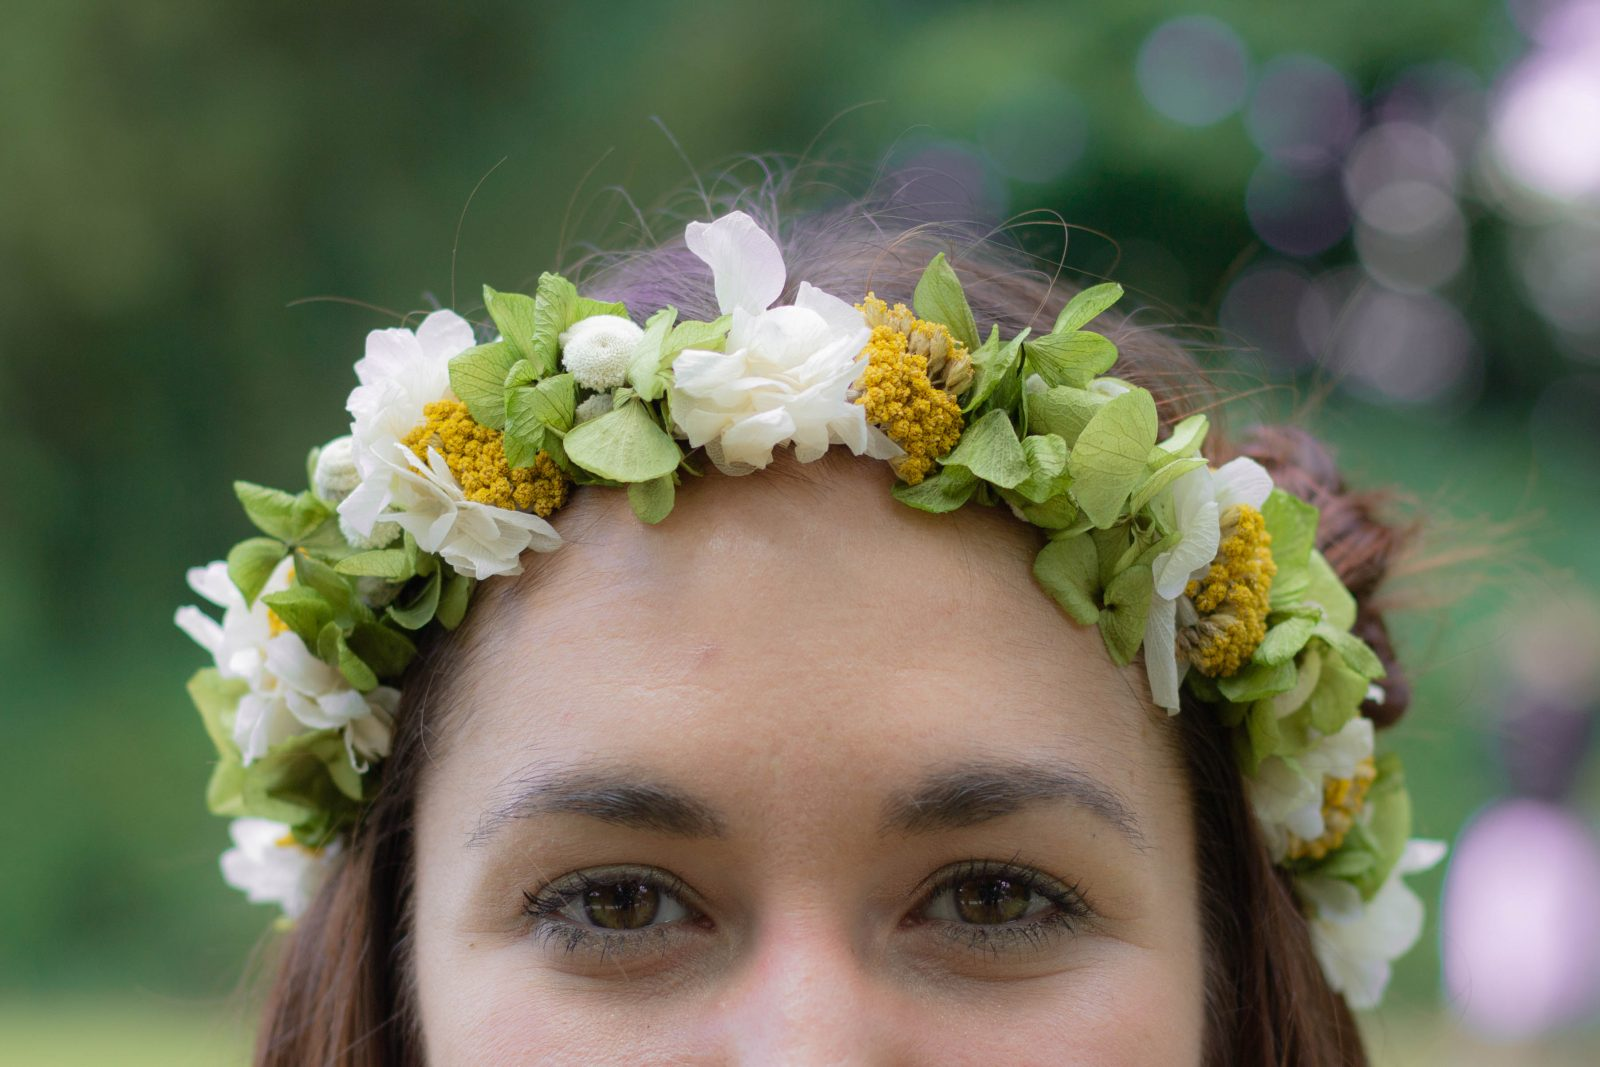 Le Jardin d'Audrey - green and yellow flower crown